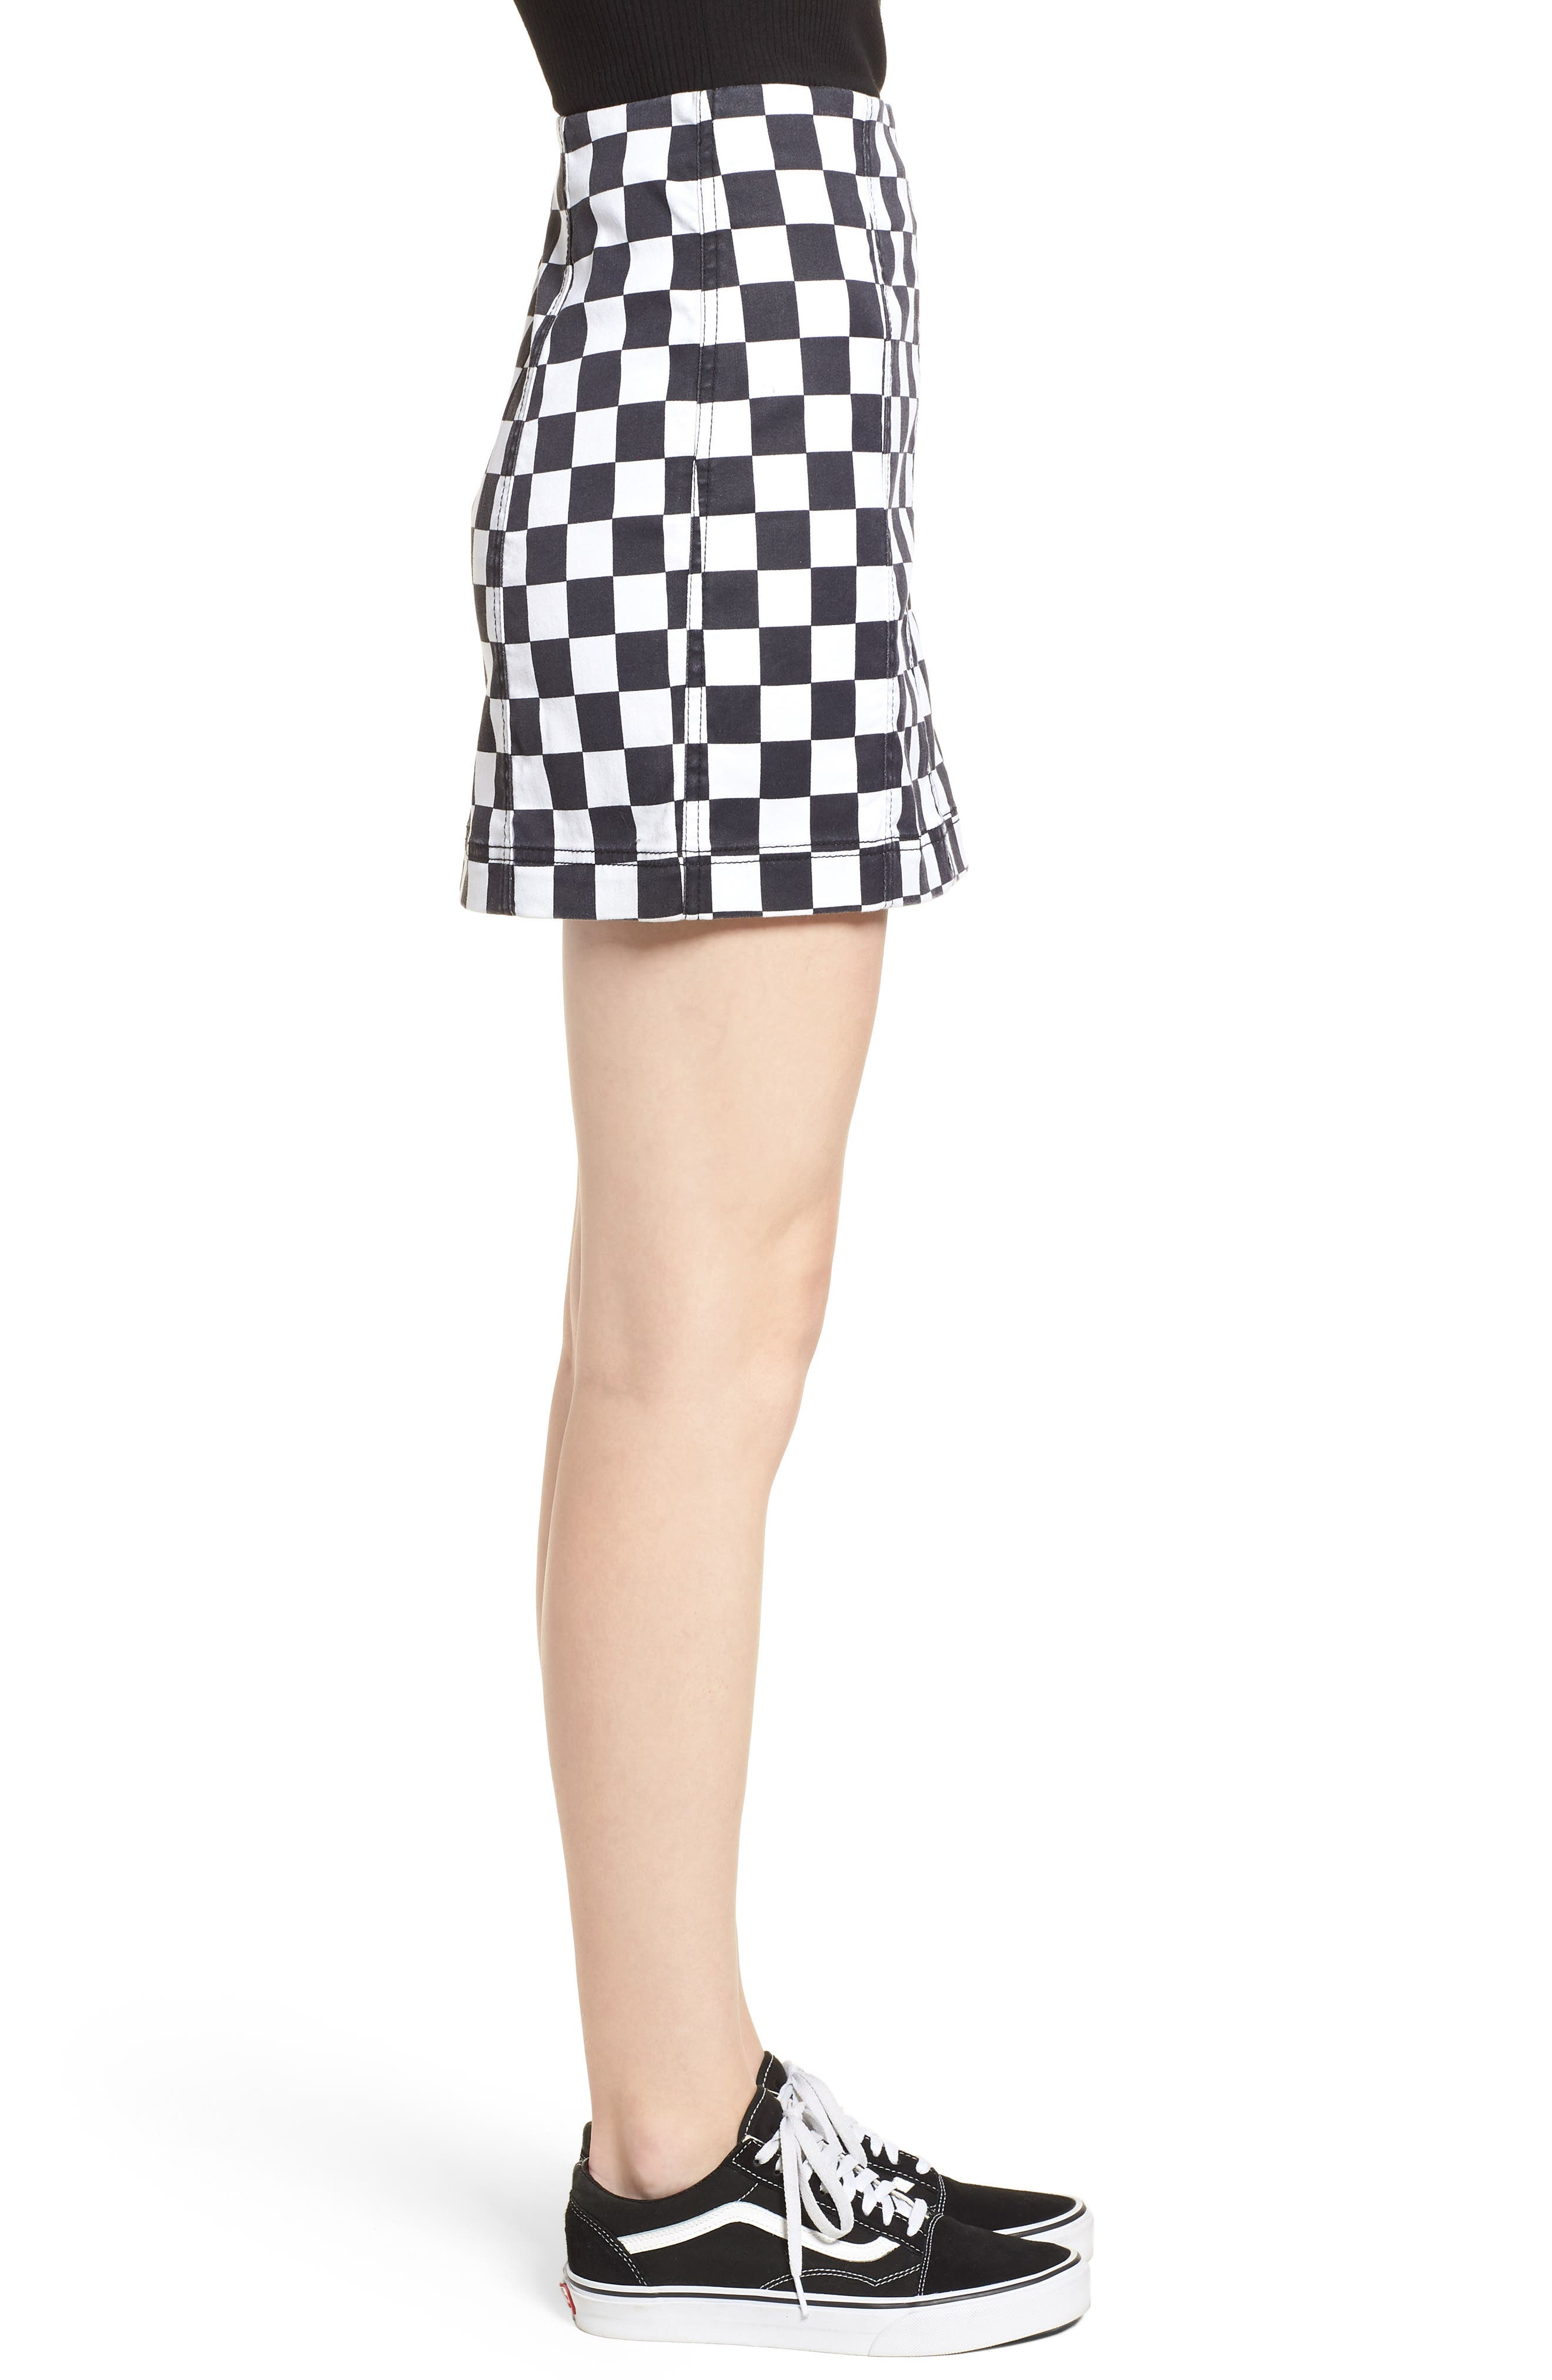 Checkered Denim Miniskirt,                             Alternate thumbnail 5, color,                             Black/ White Checkered